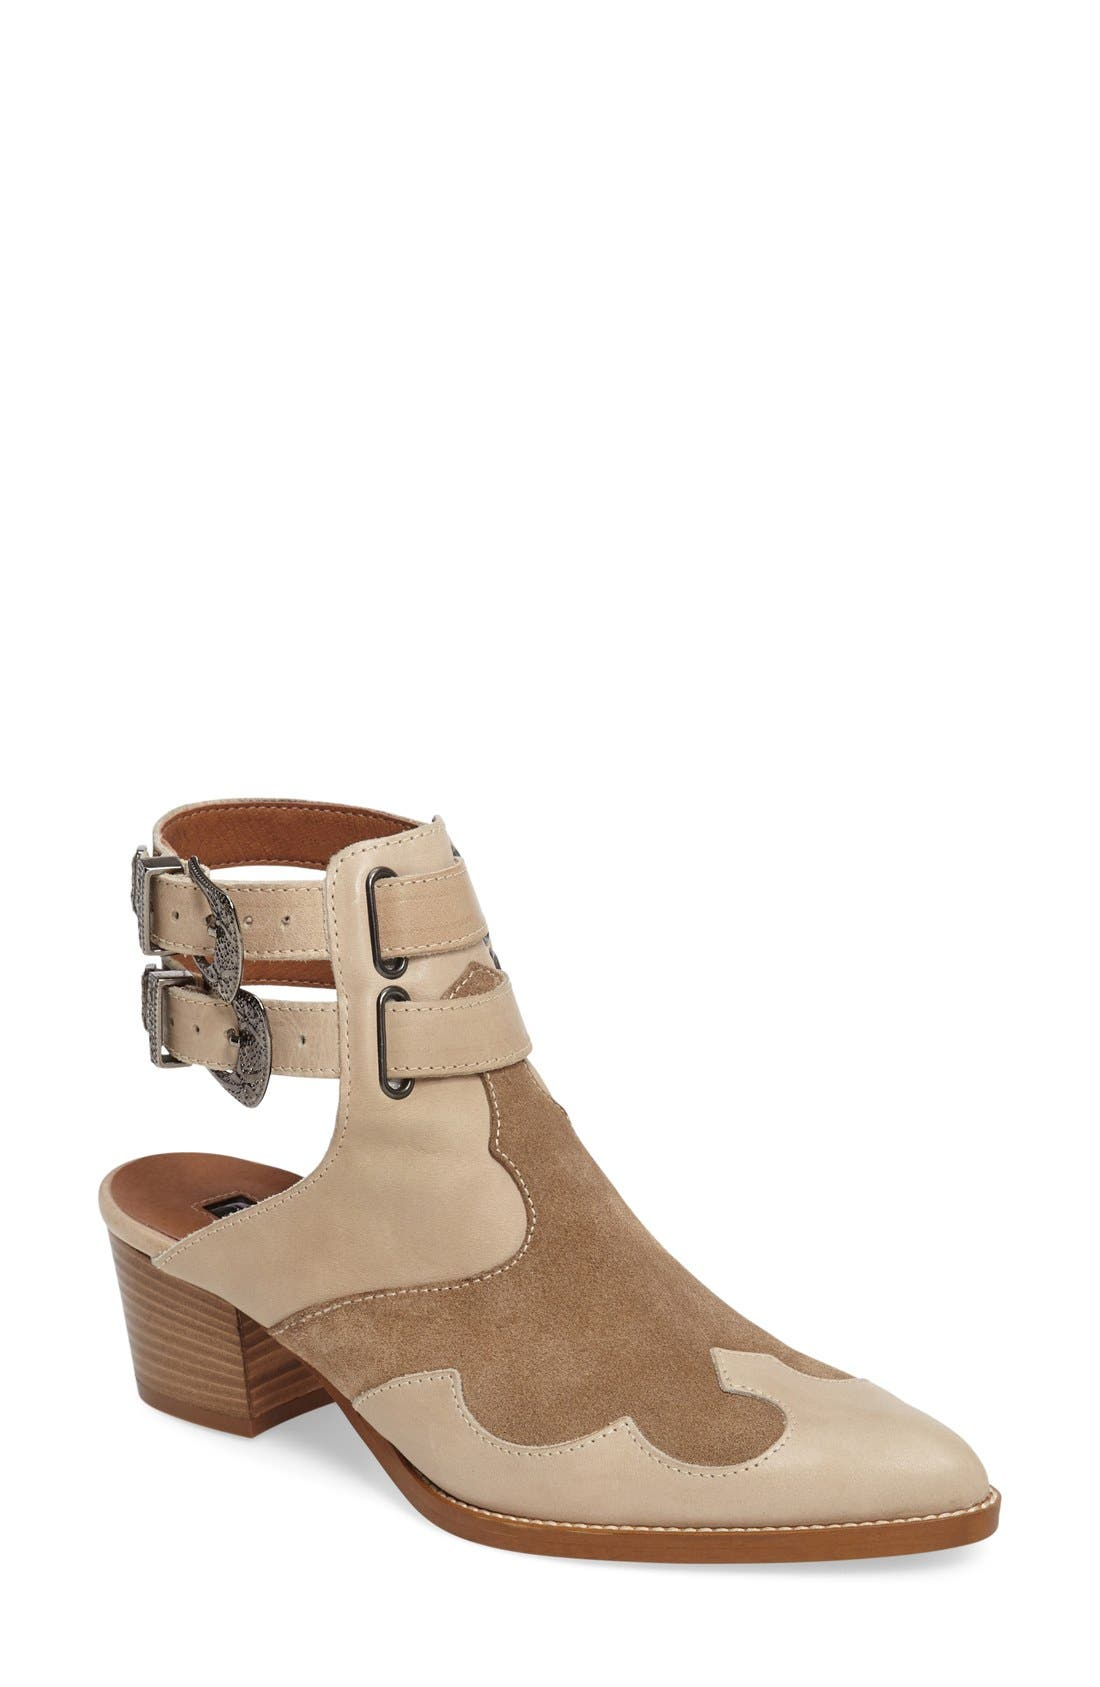 Alternate Image 1 Selected - Topshop 'Austin' Western Bootie (Women)